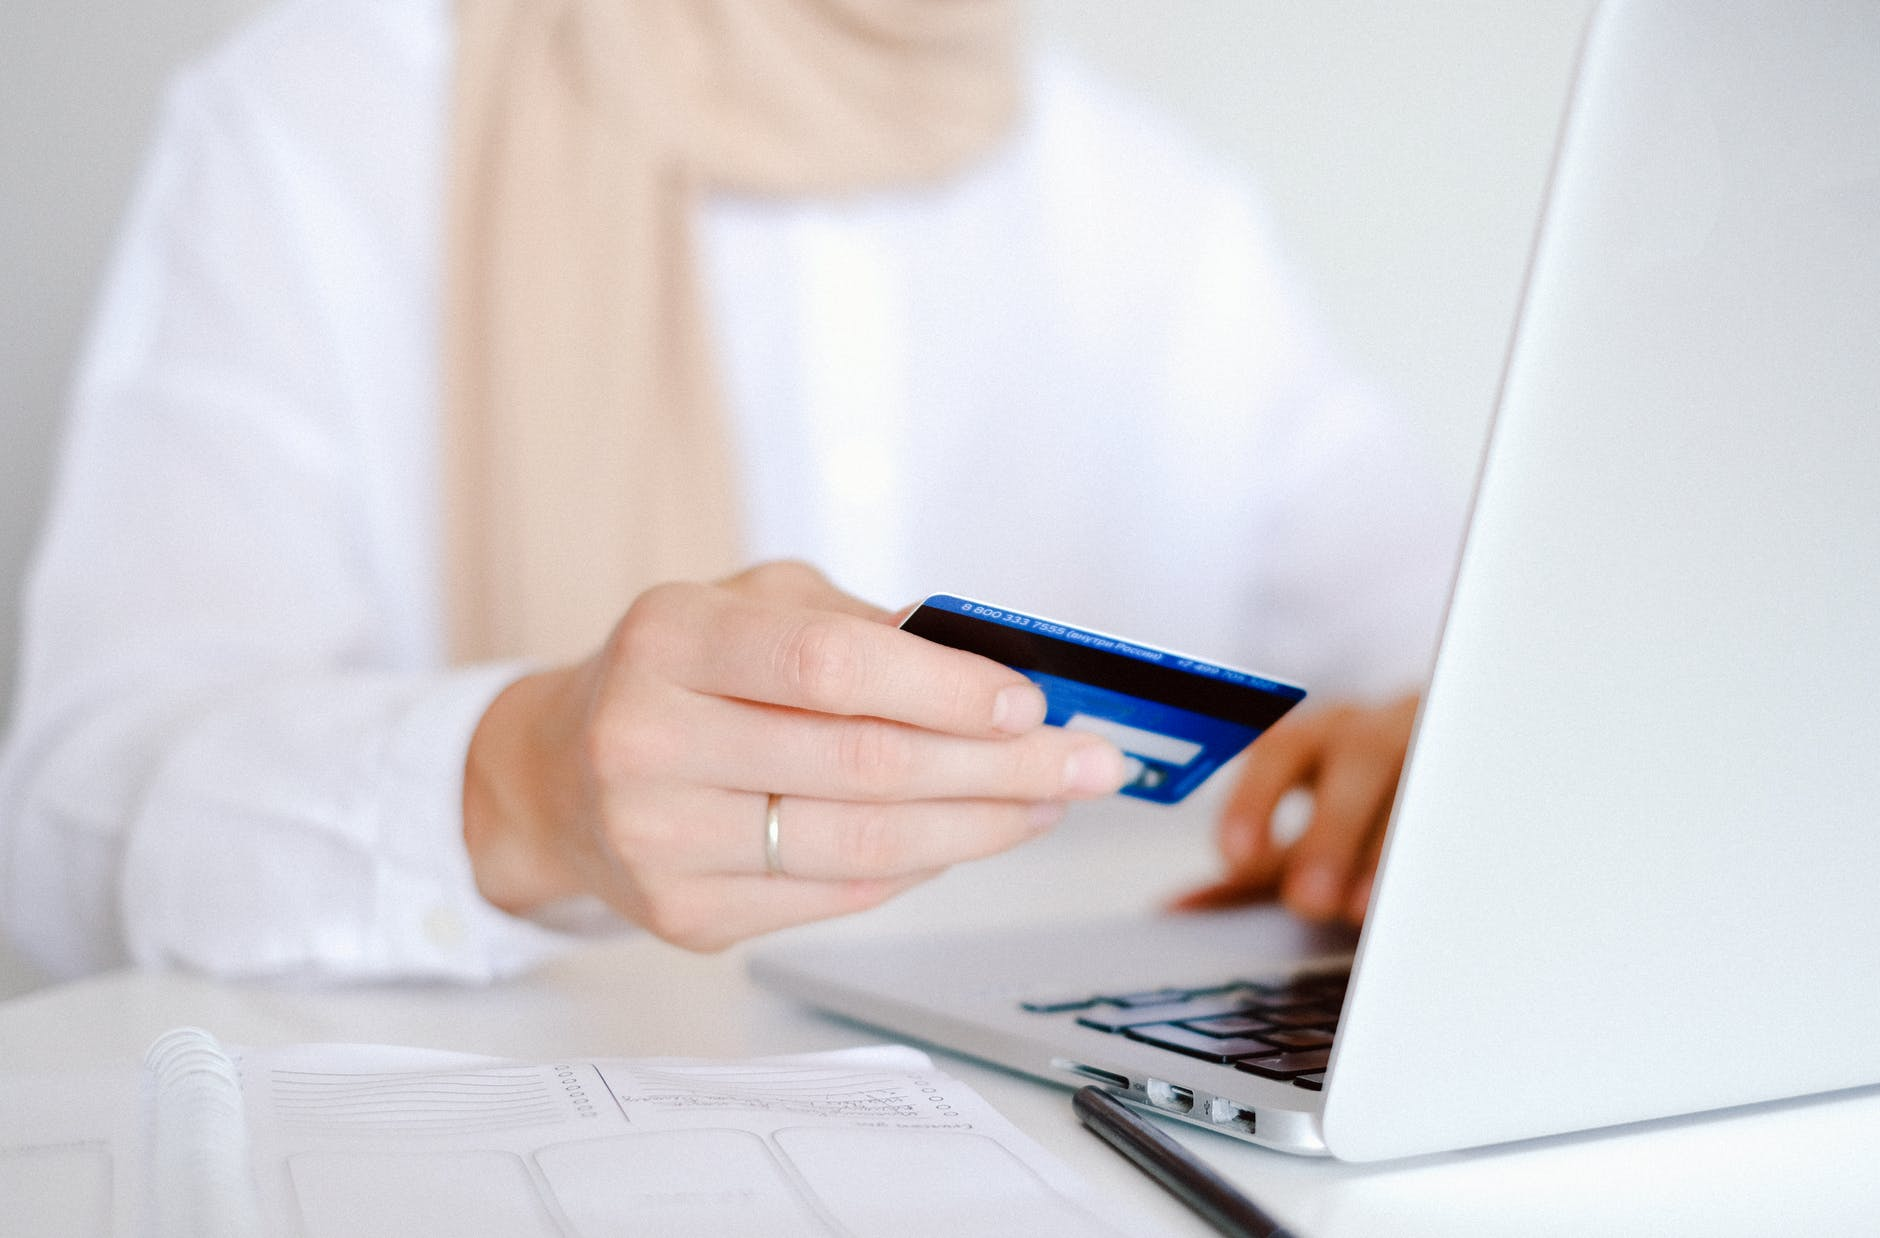 A woman in a white shirt about to make a payment with a debit card on her laptop.